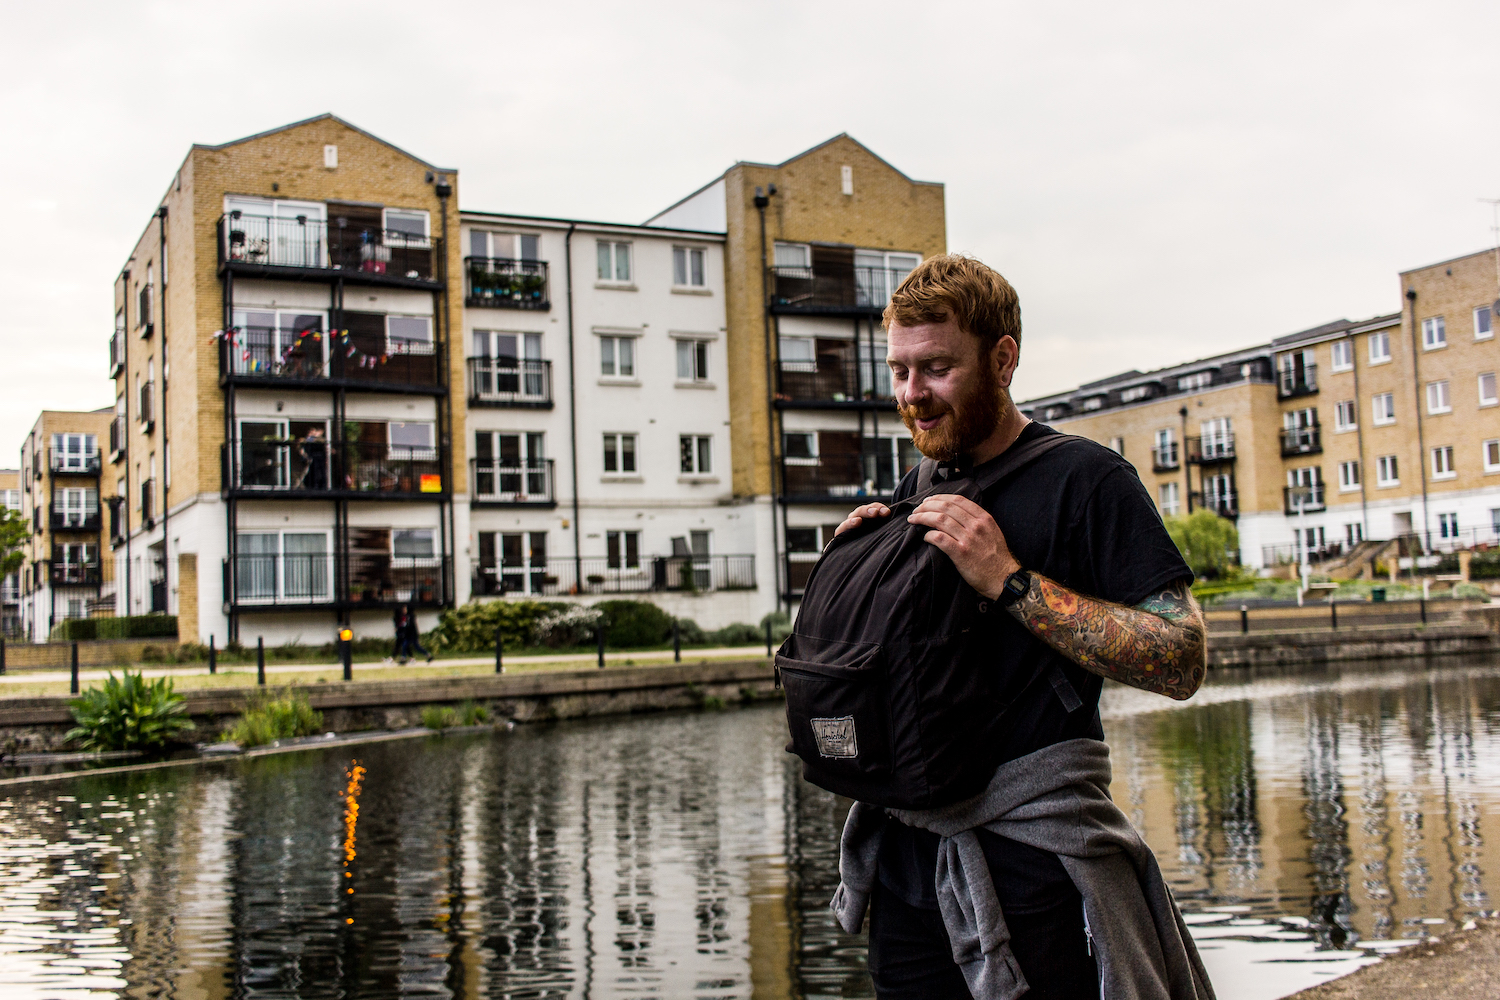 Professional Photography White Man With Beard Wearing Black T-Shirt Grey Hoody Around Waist Holding Black Backpack Over Stomach In Front Of River Canal With Buildings In Background